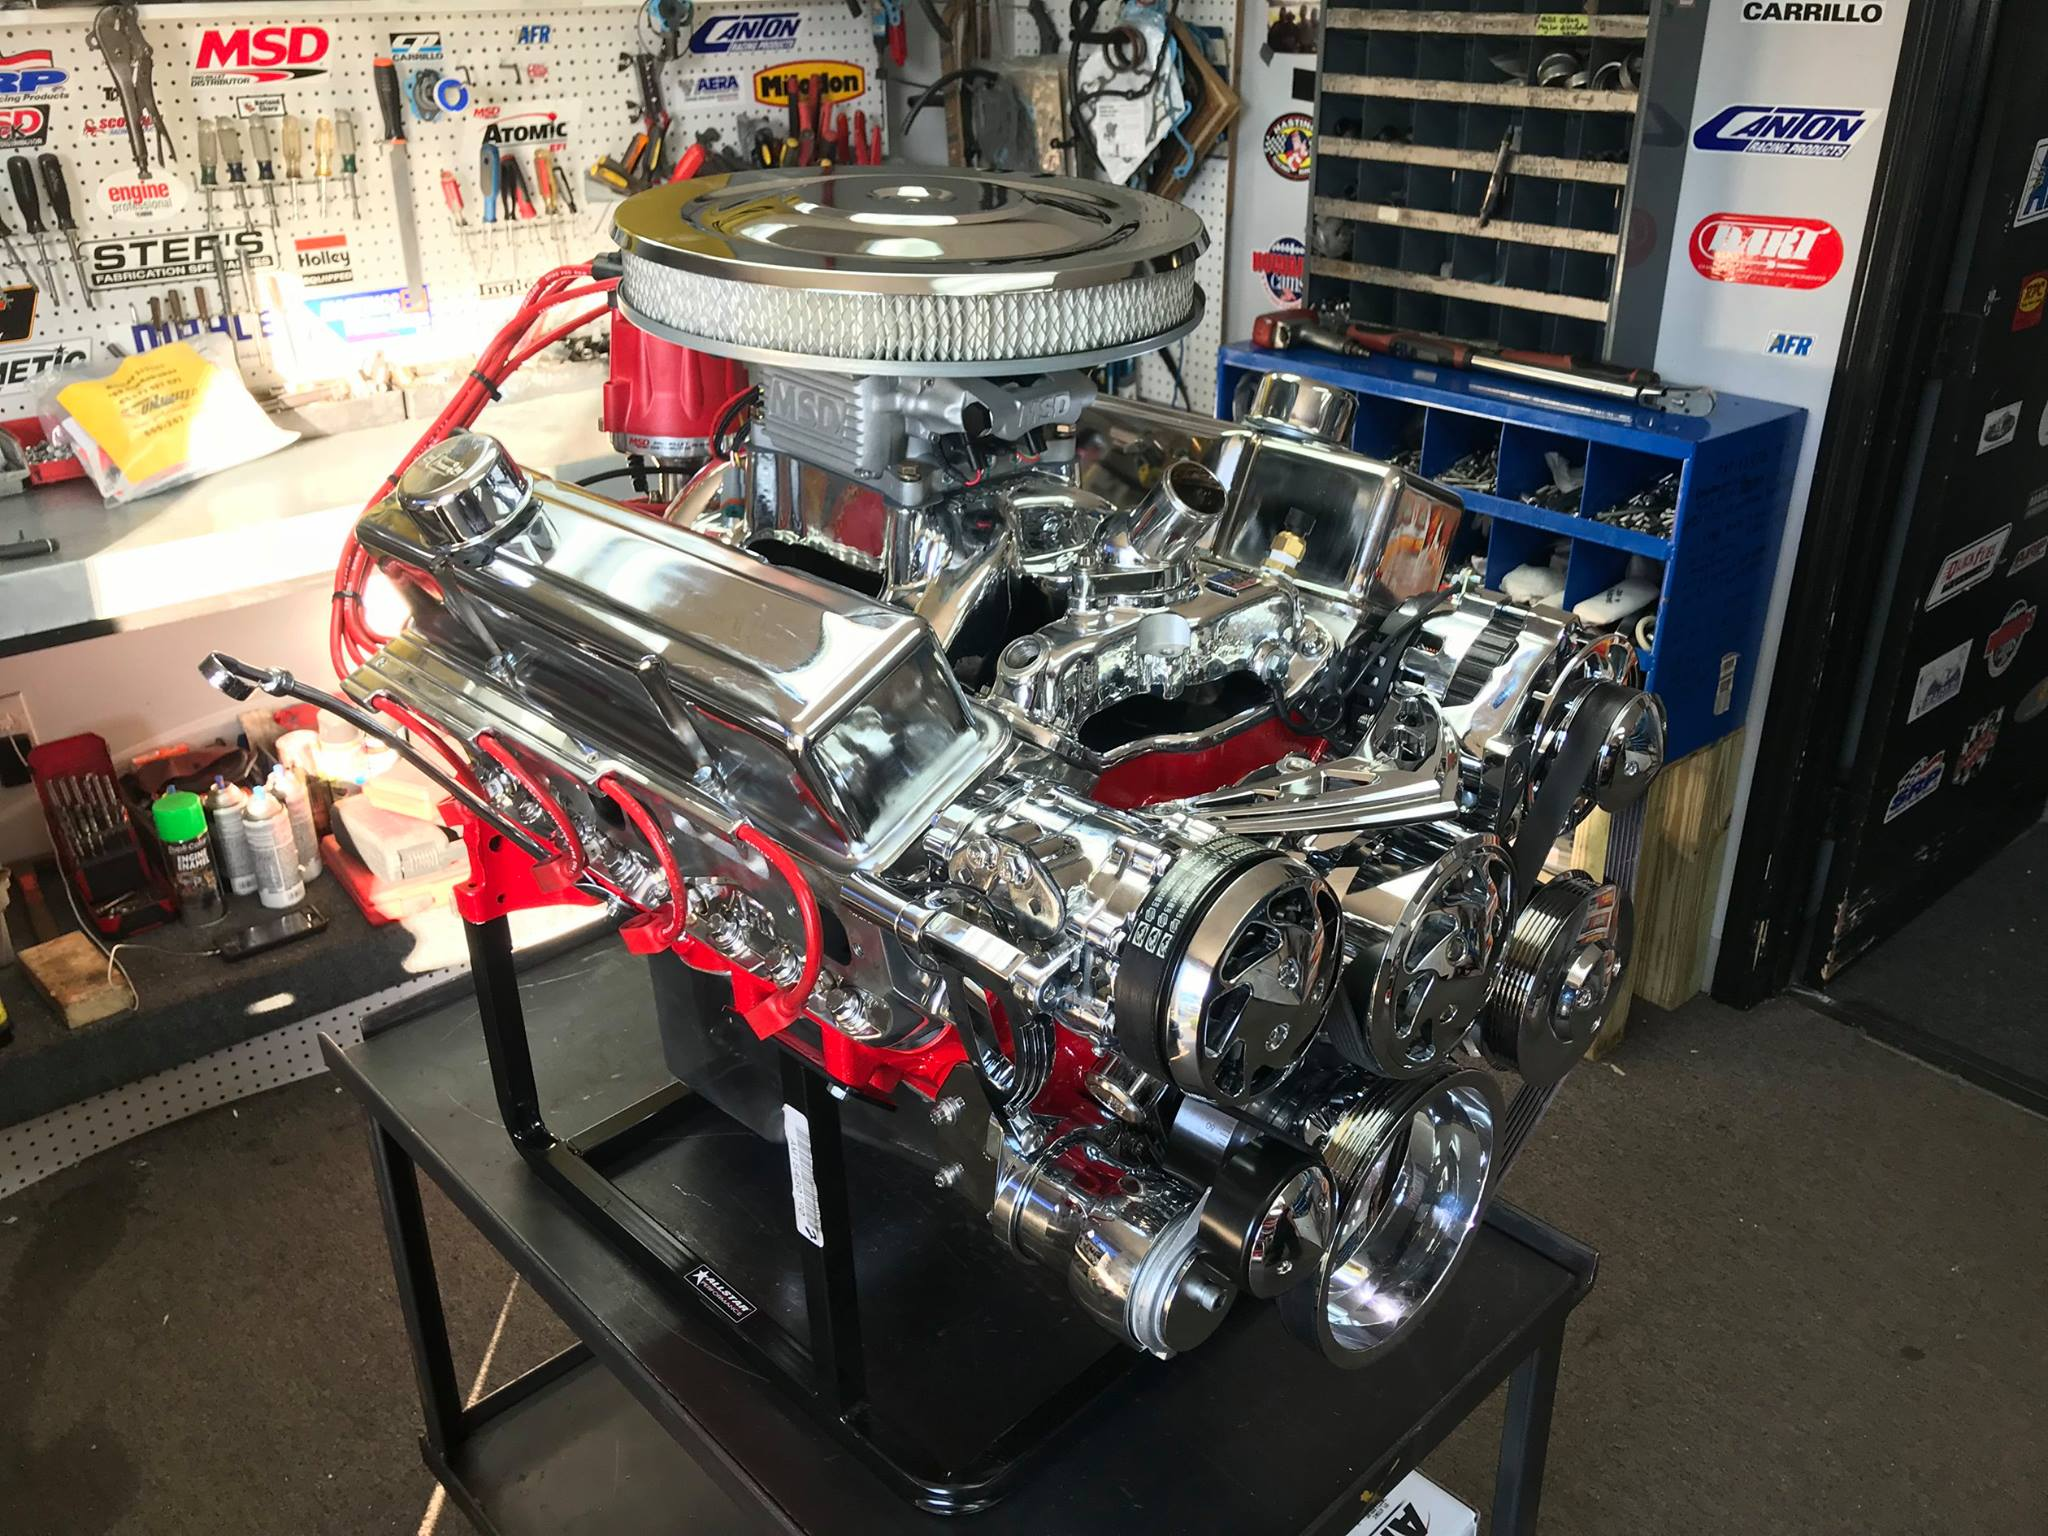 Crate engines chevy performance engines stroker 383 427 540 632 383 ci sbc crate engine 450hp malvernweather Images